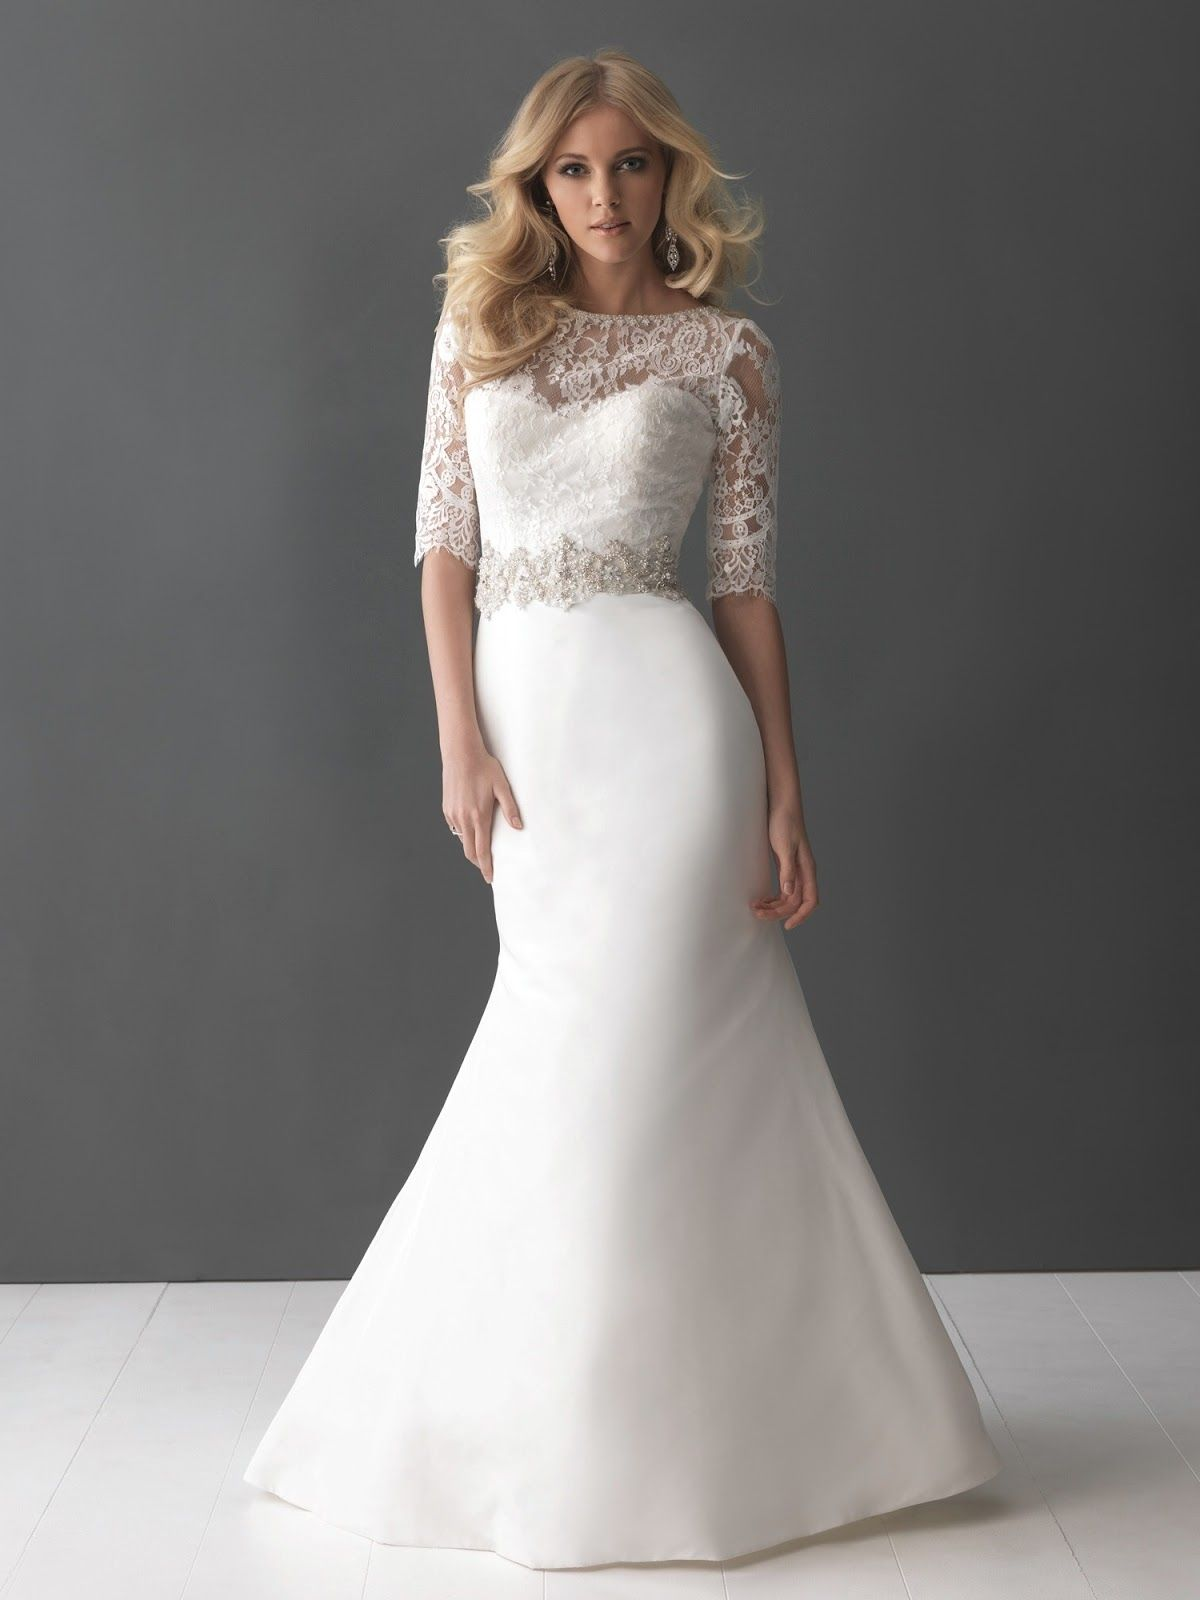 Best Wedding Dress Styles For Short Curvy Brides